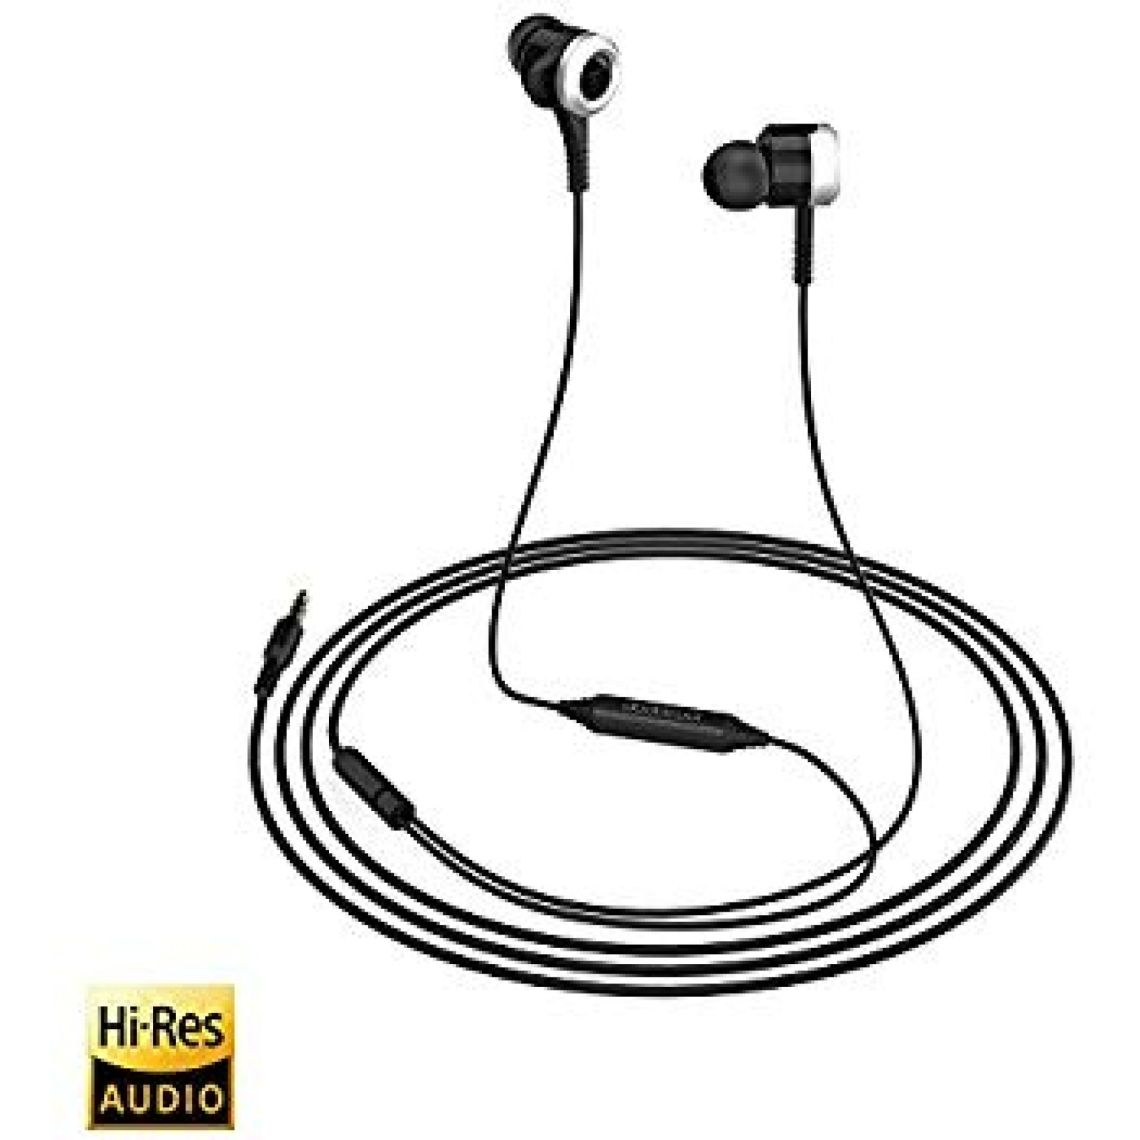 Amazon.com: dodocool Hi-Res In-Ear Earphones with Sound Isolation In-line Remote for the Devices with a 3.5 mm Audio Jack: Home Audio & Theater